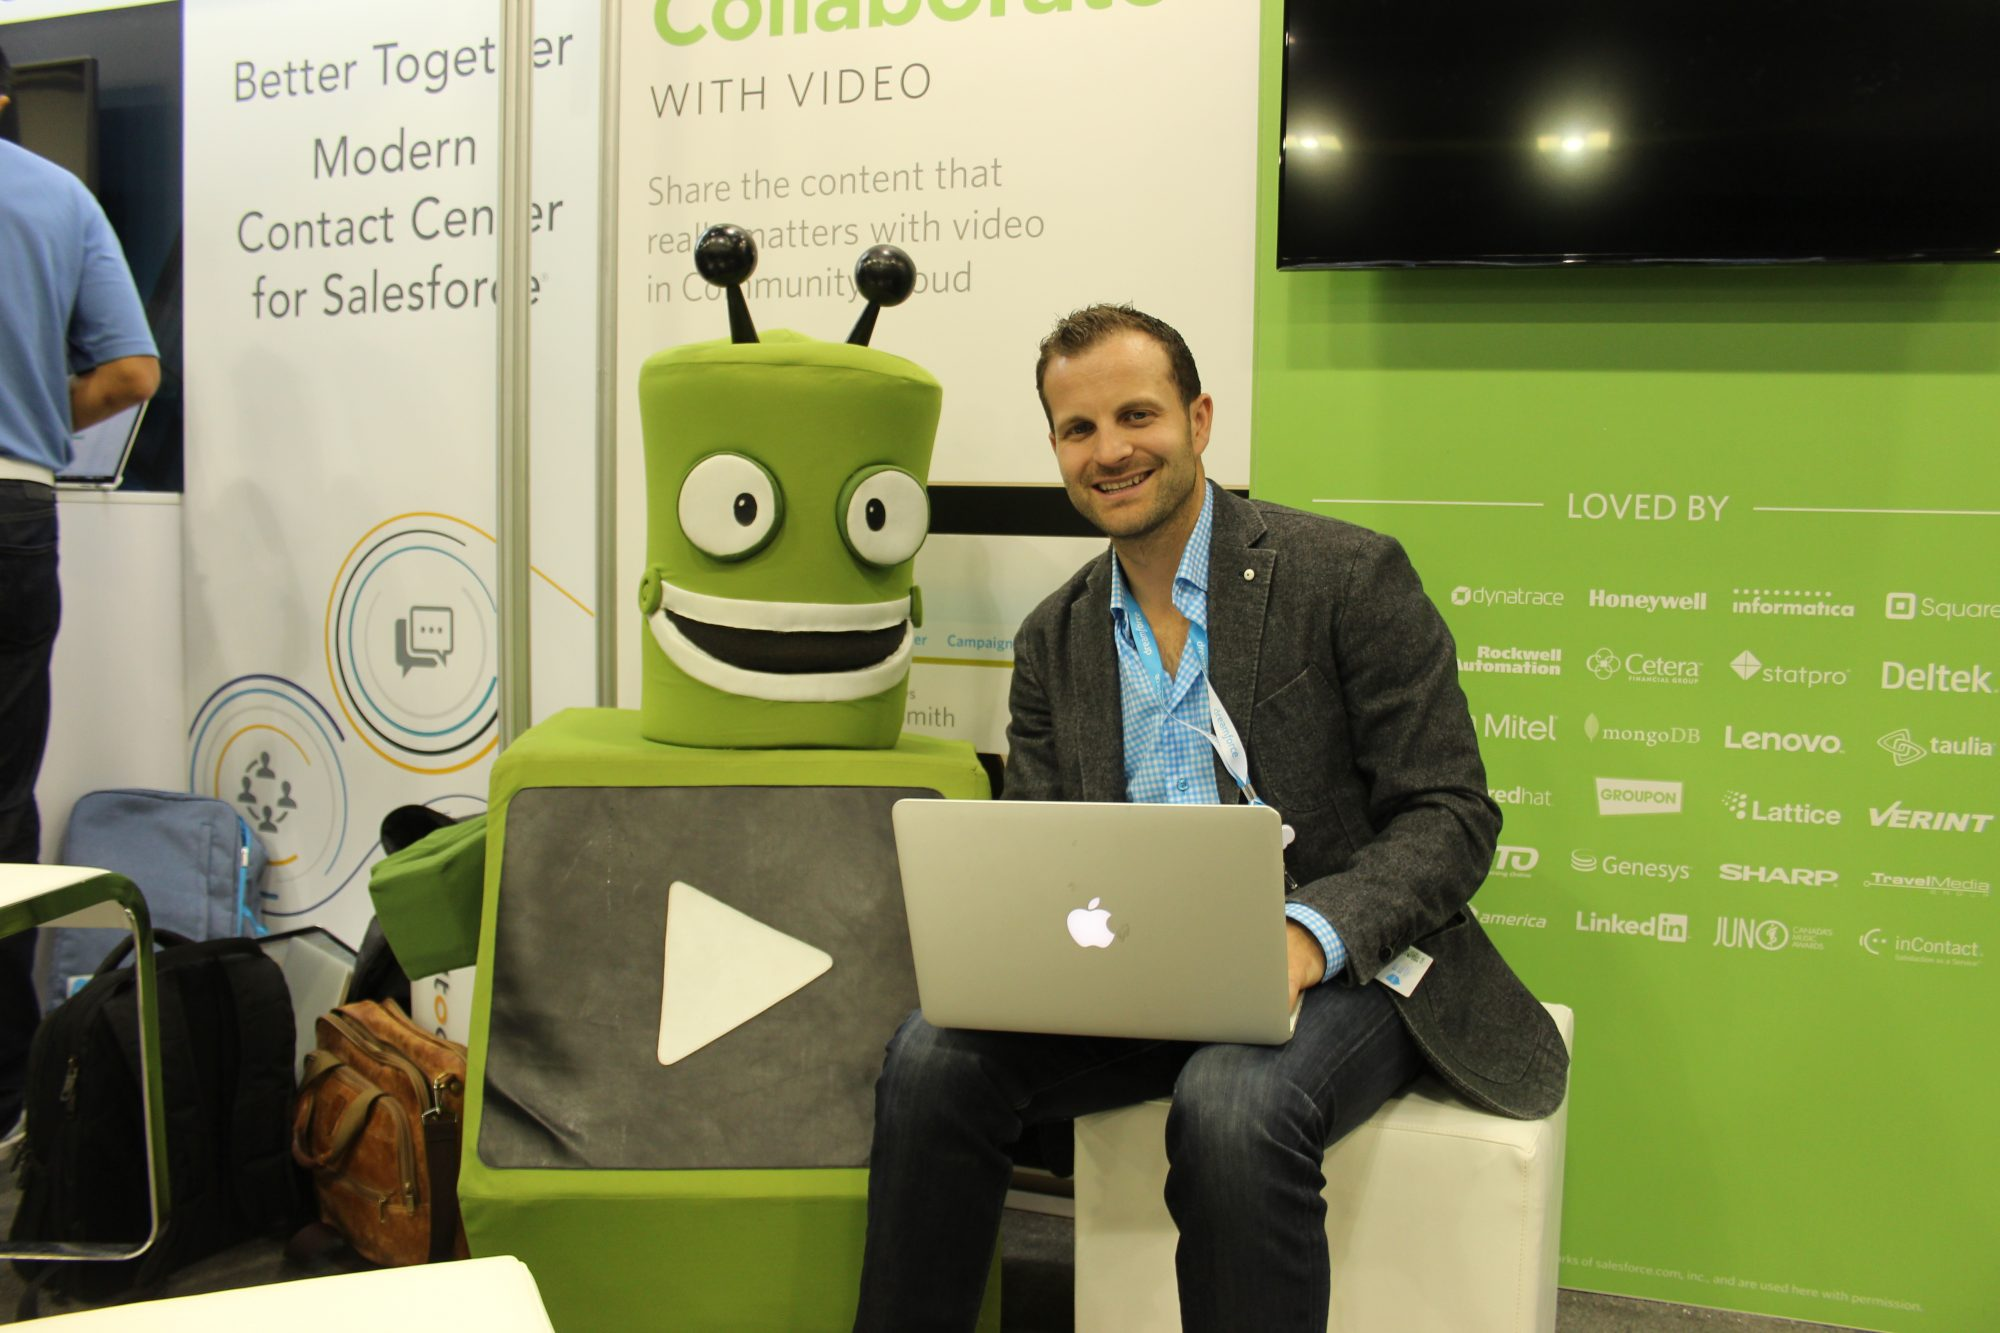 Jeff Gadway, director of product martketing at Vidyard, with mascot Vbot at Dreamforce.